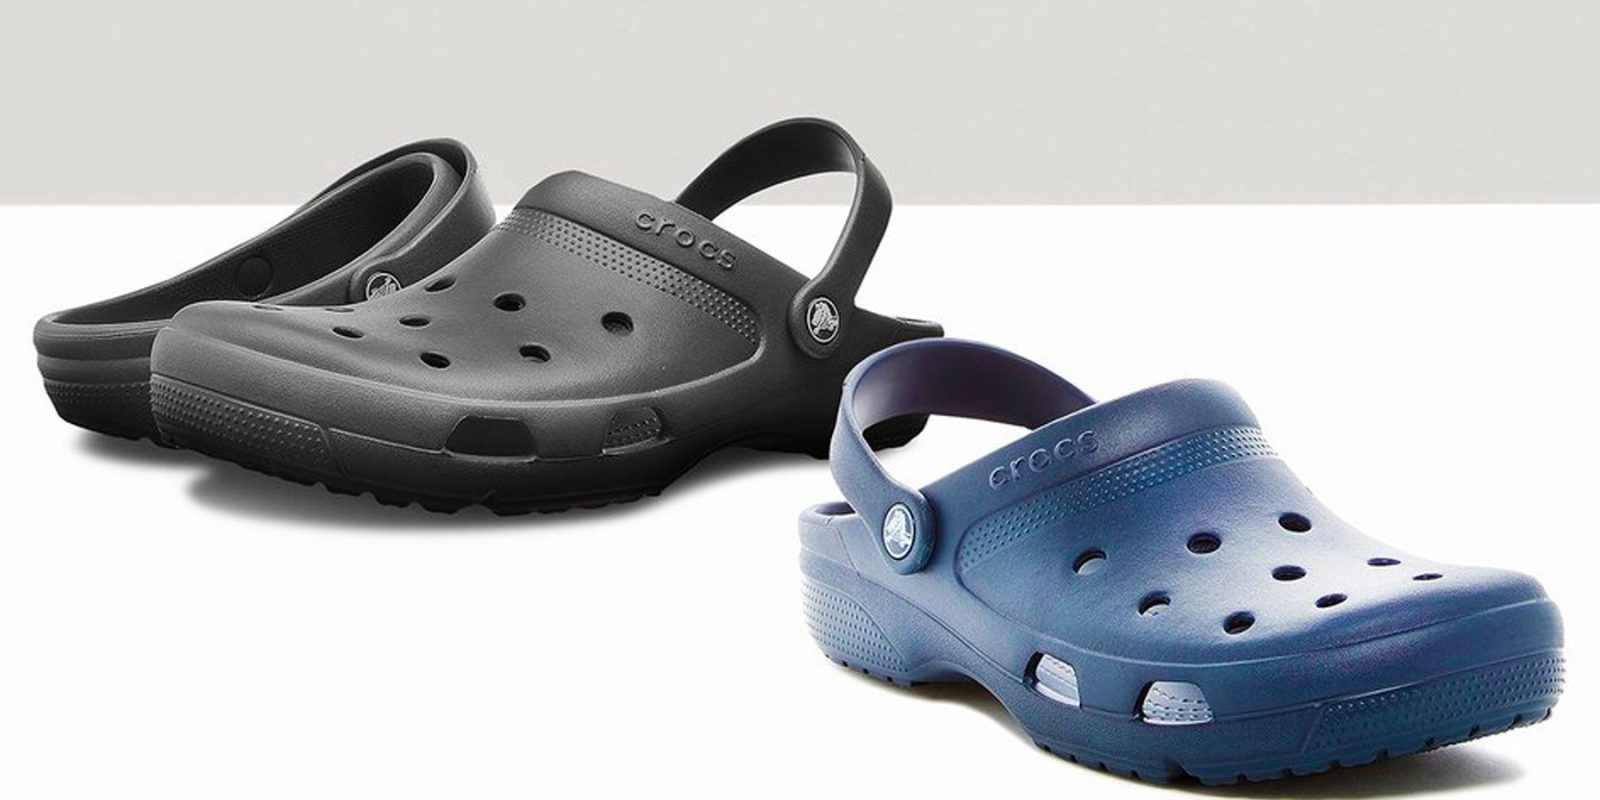 Crocs cuts 30% off select boots, clogs, and more during its Monday Funday Sale